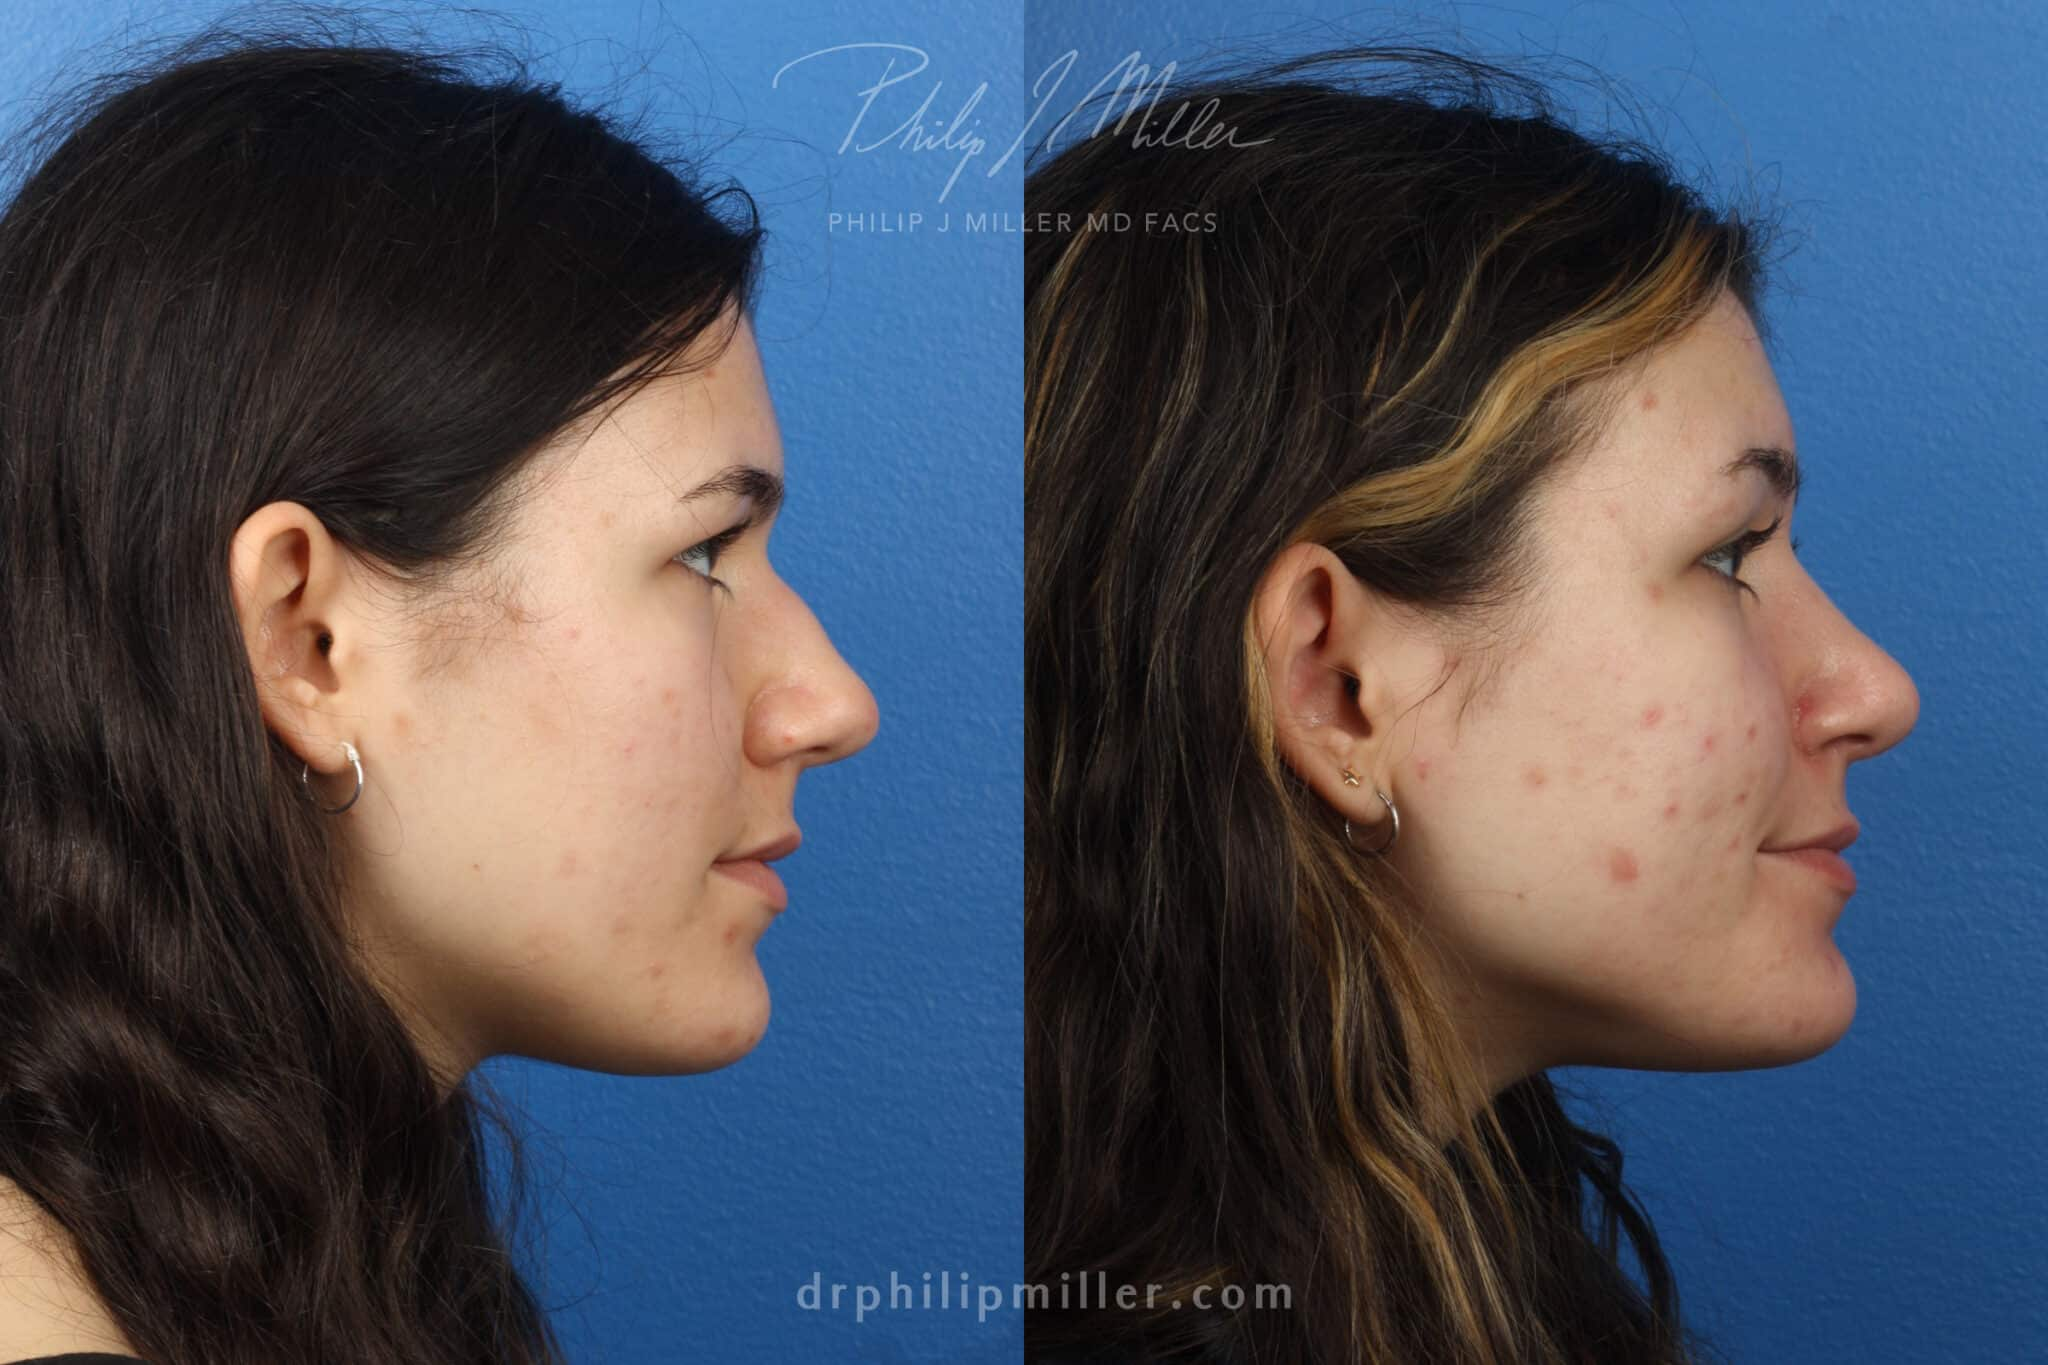 Rhinoplasty to improve the appearance of the nose, one week post-op, by Dr. Miller